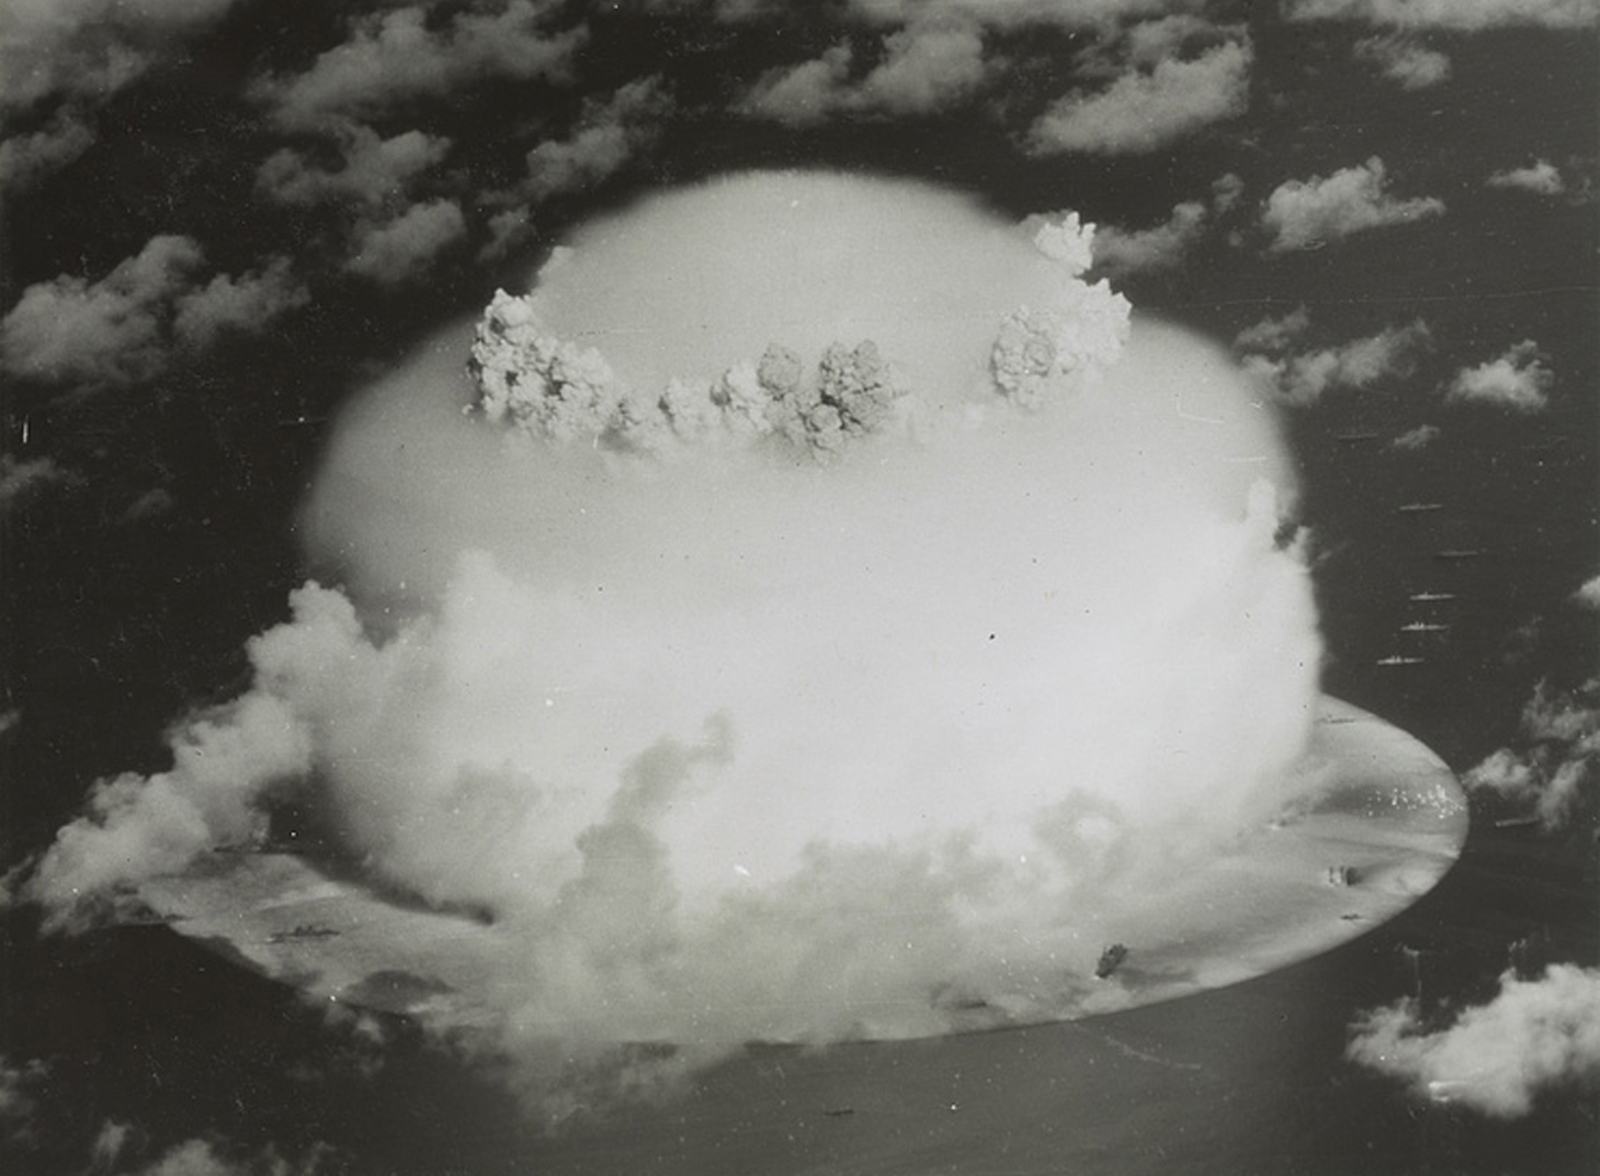 A mushroom cloud rises with ships below during Operation Crossroads nuclear weapons test on Bikini Atoll, Marshall Islands in this 1946 handout provided by the U.S. Library of Congress.